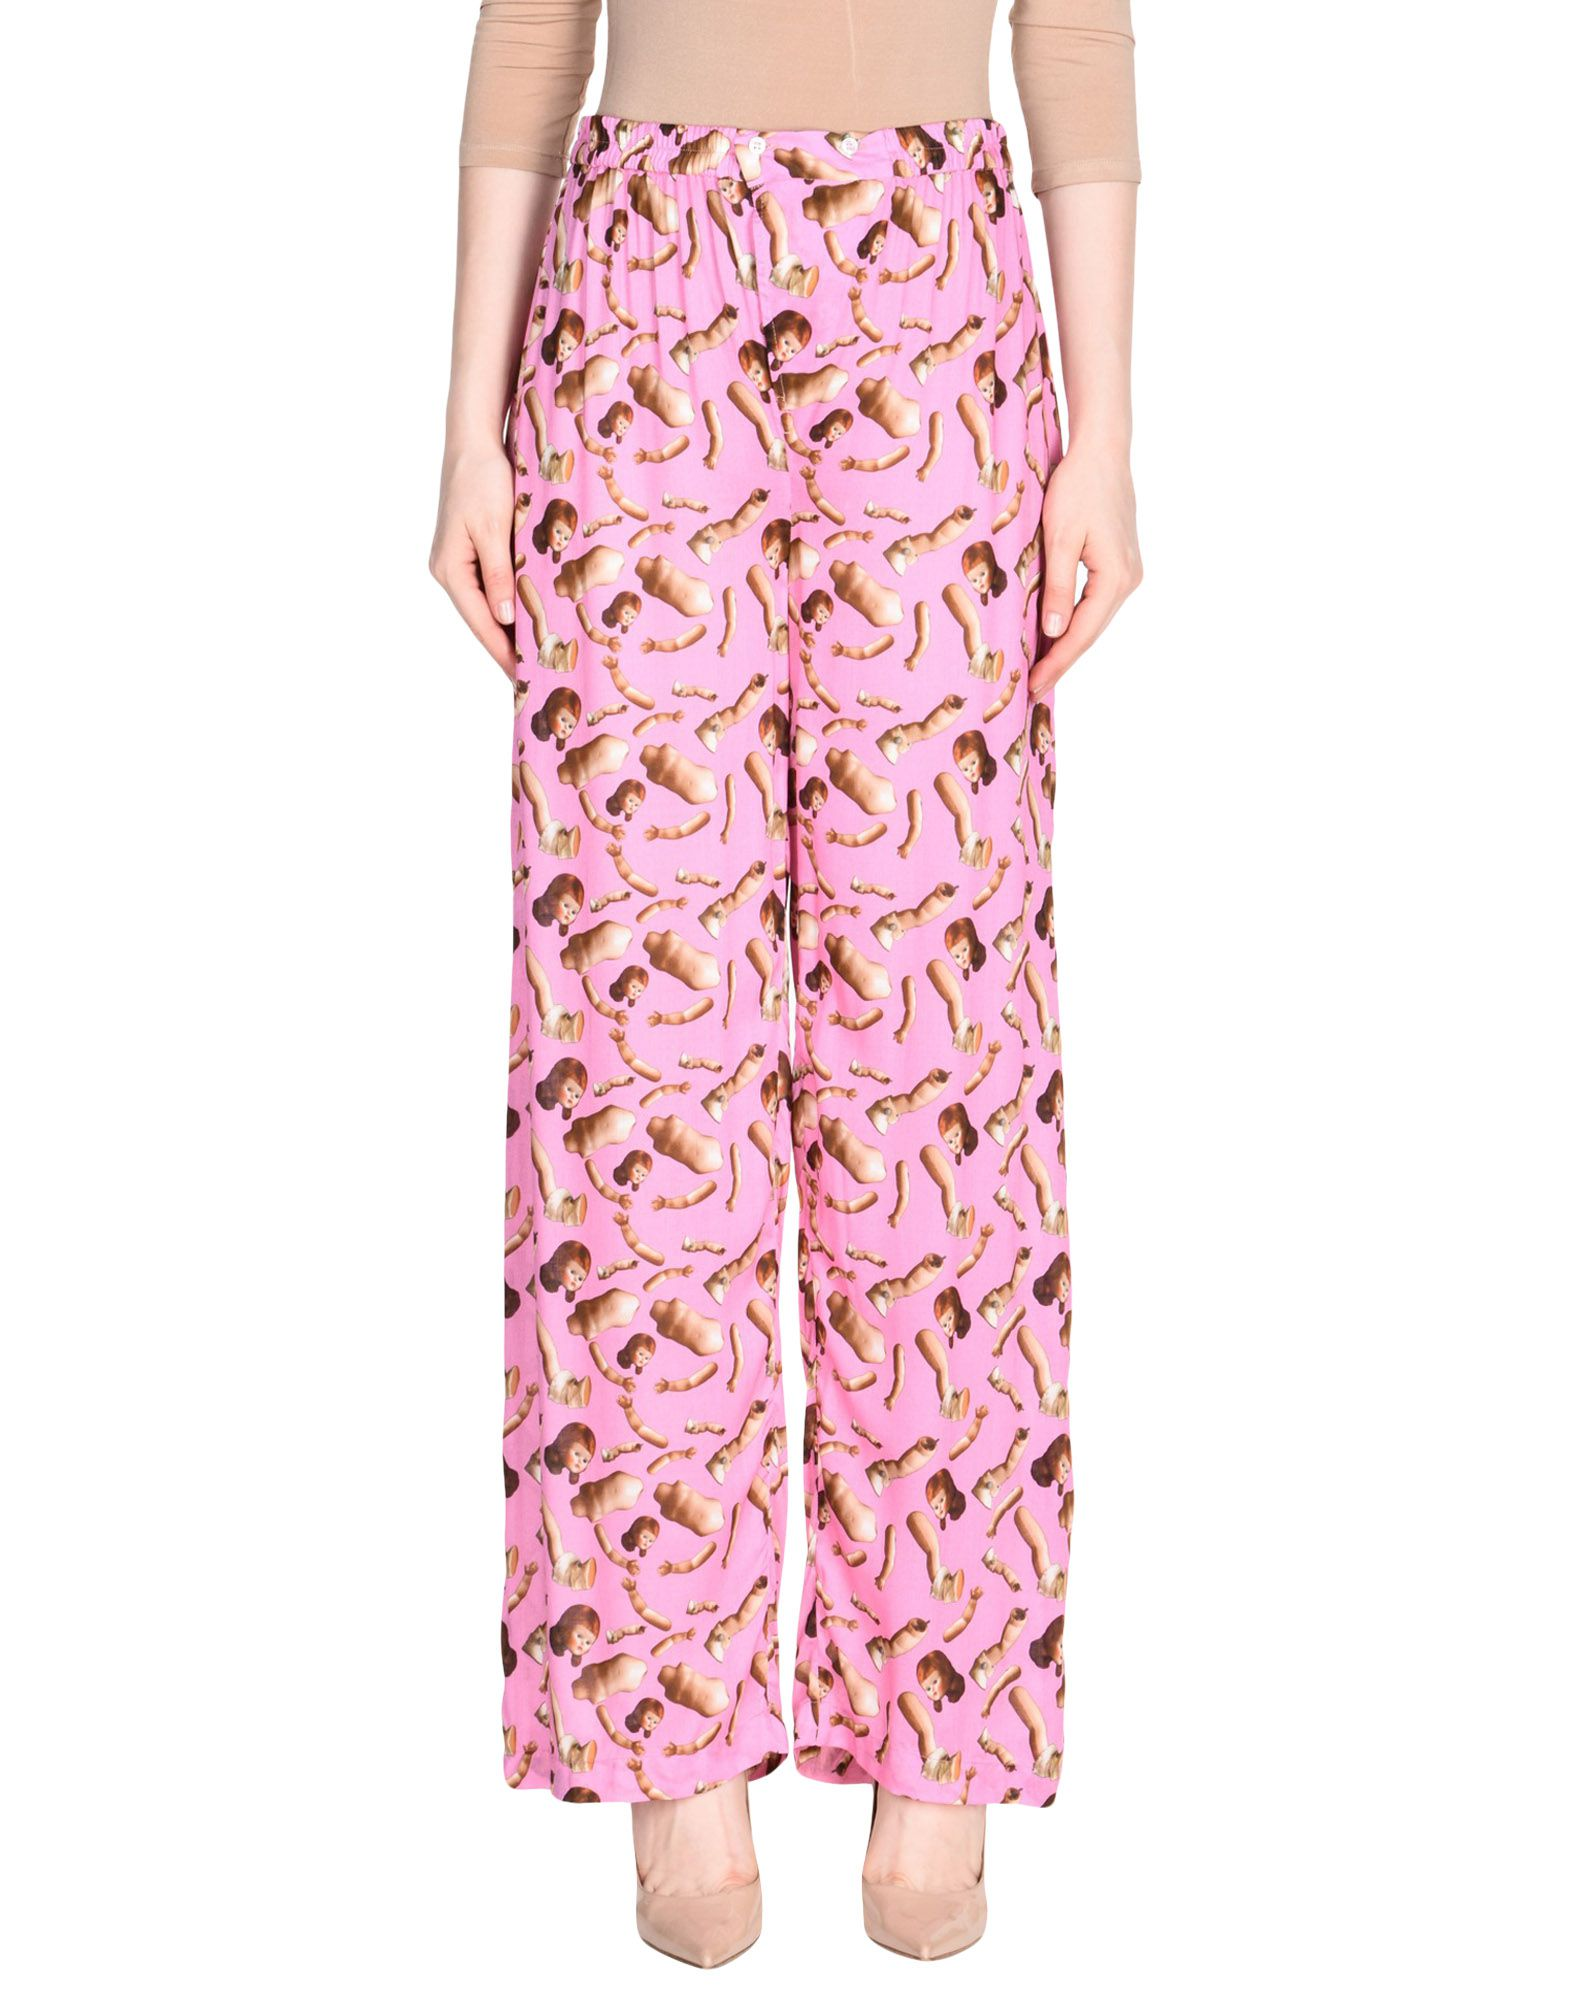 GIORGIA FIORE Casual Pants in Pink